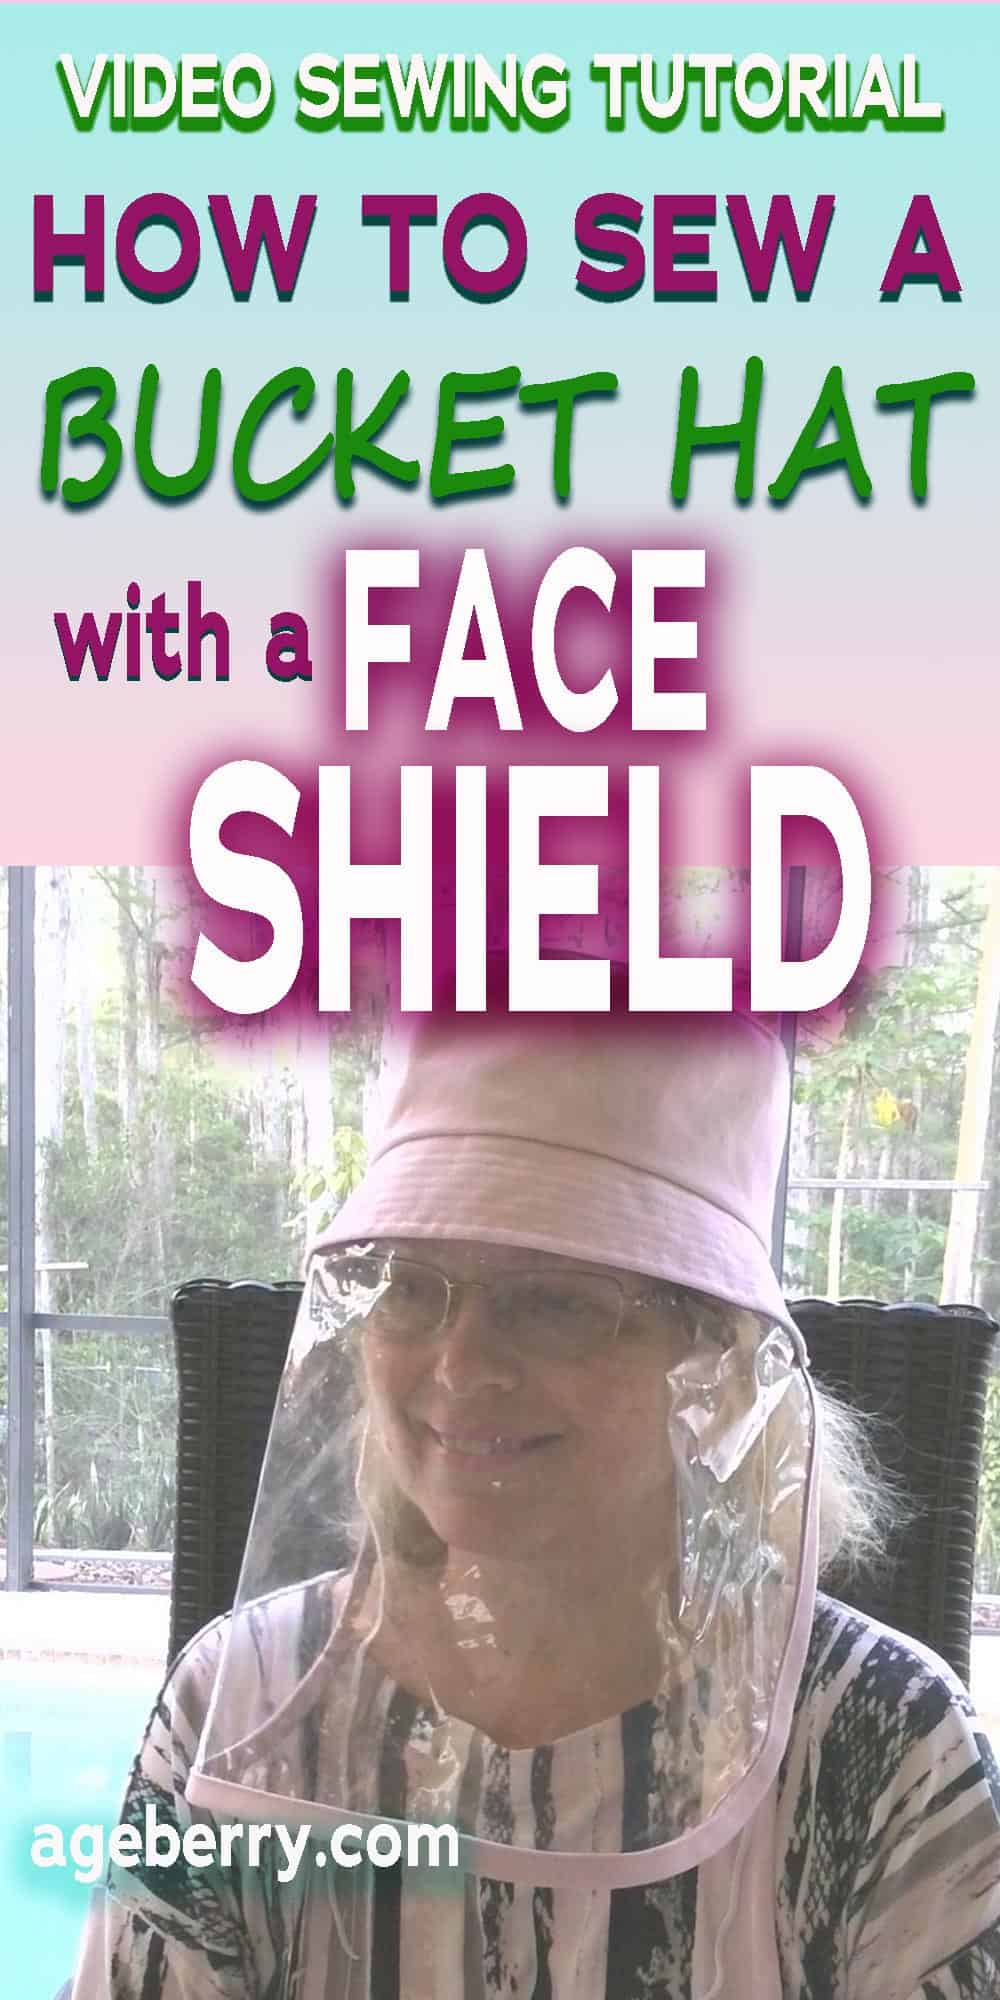 Sewing tutorial on a bucket hat with a shield